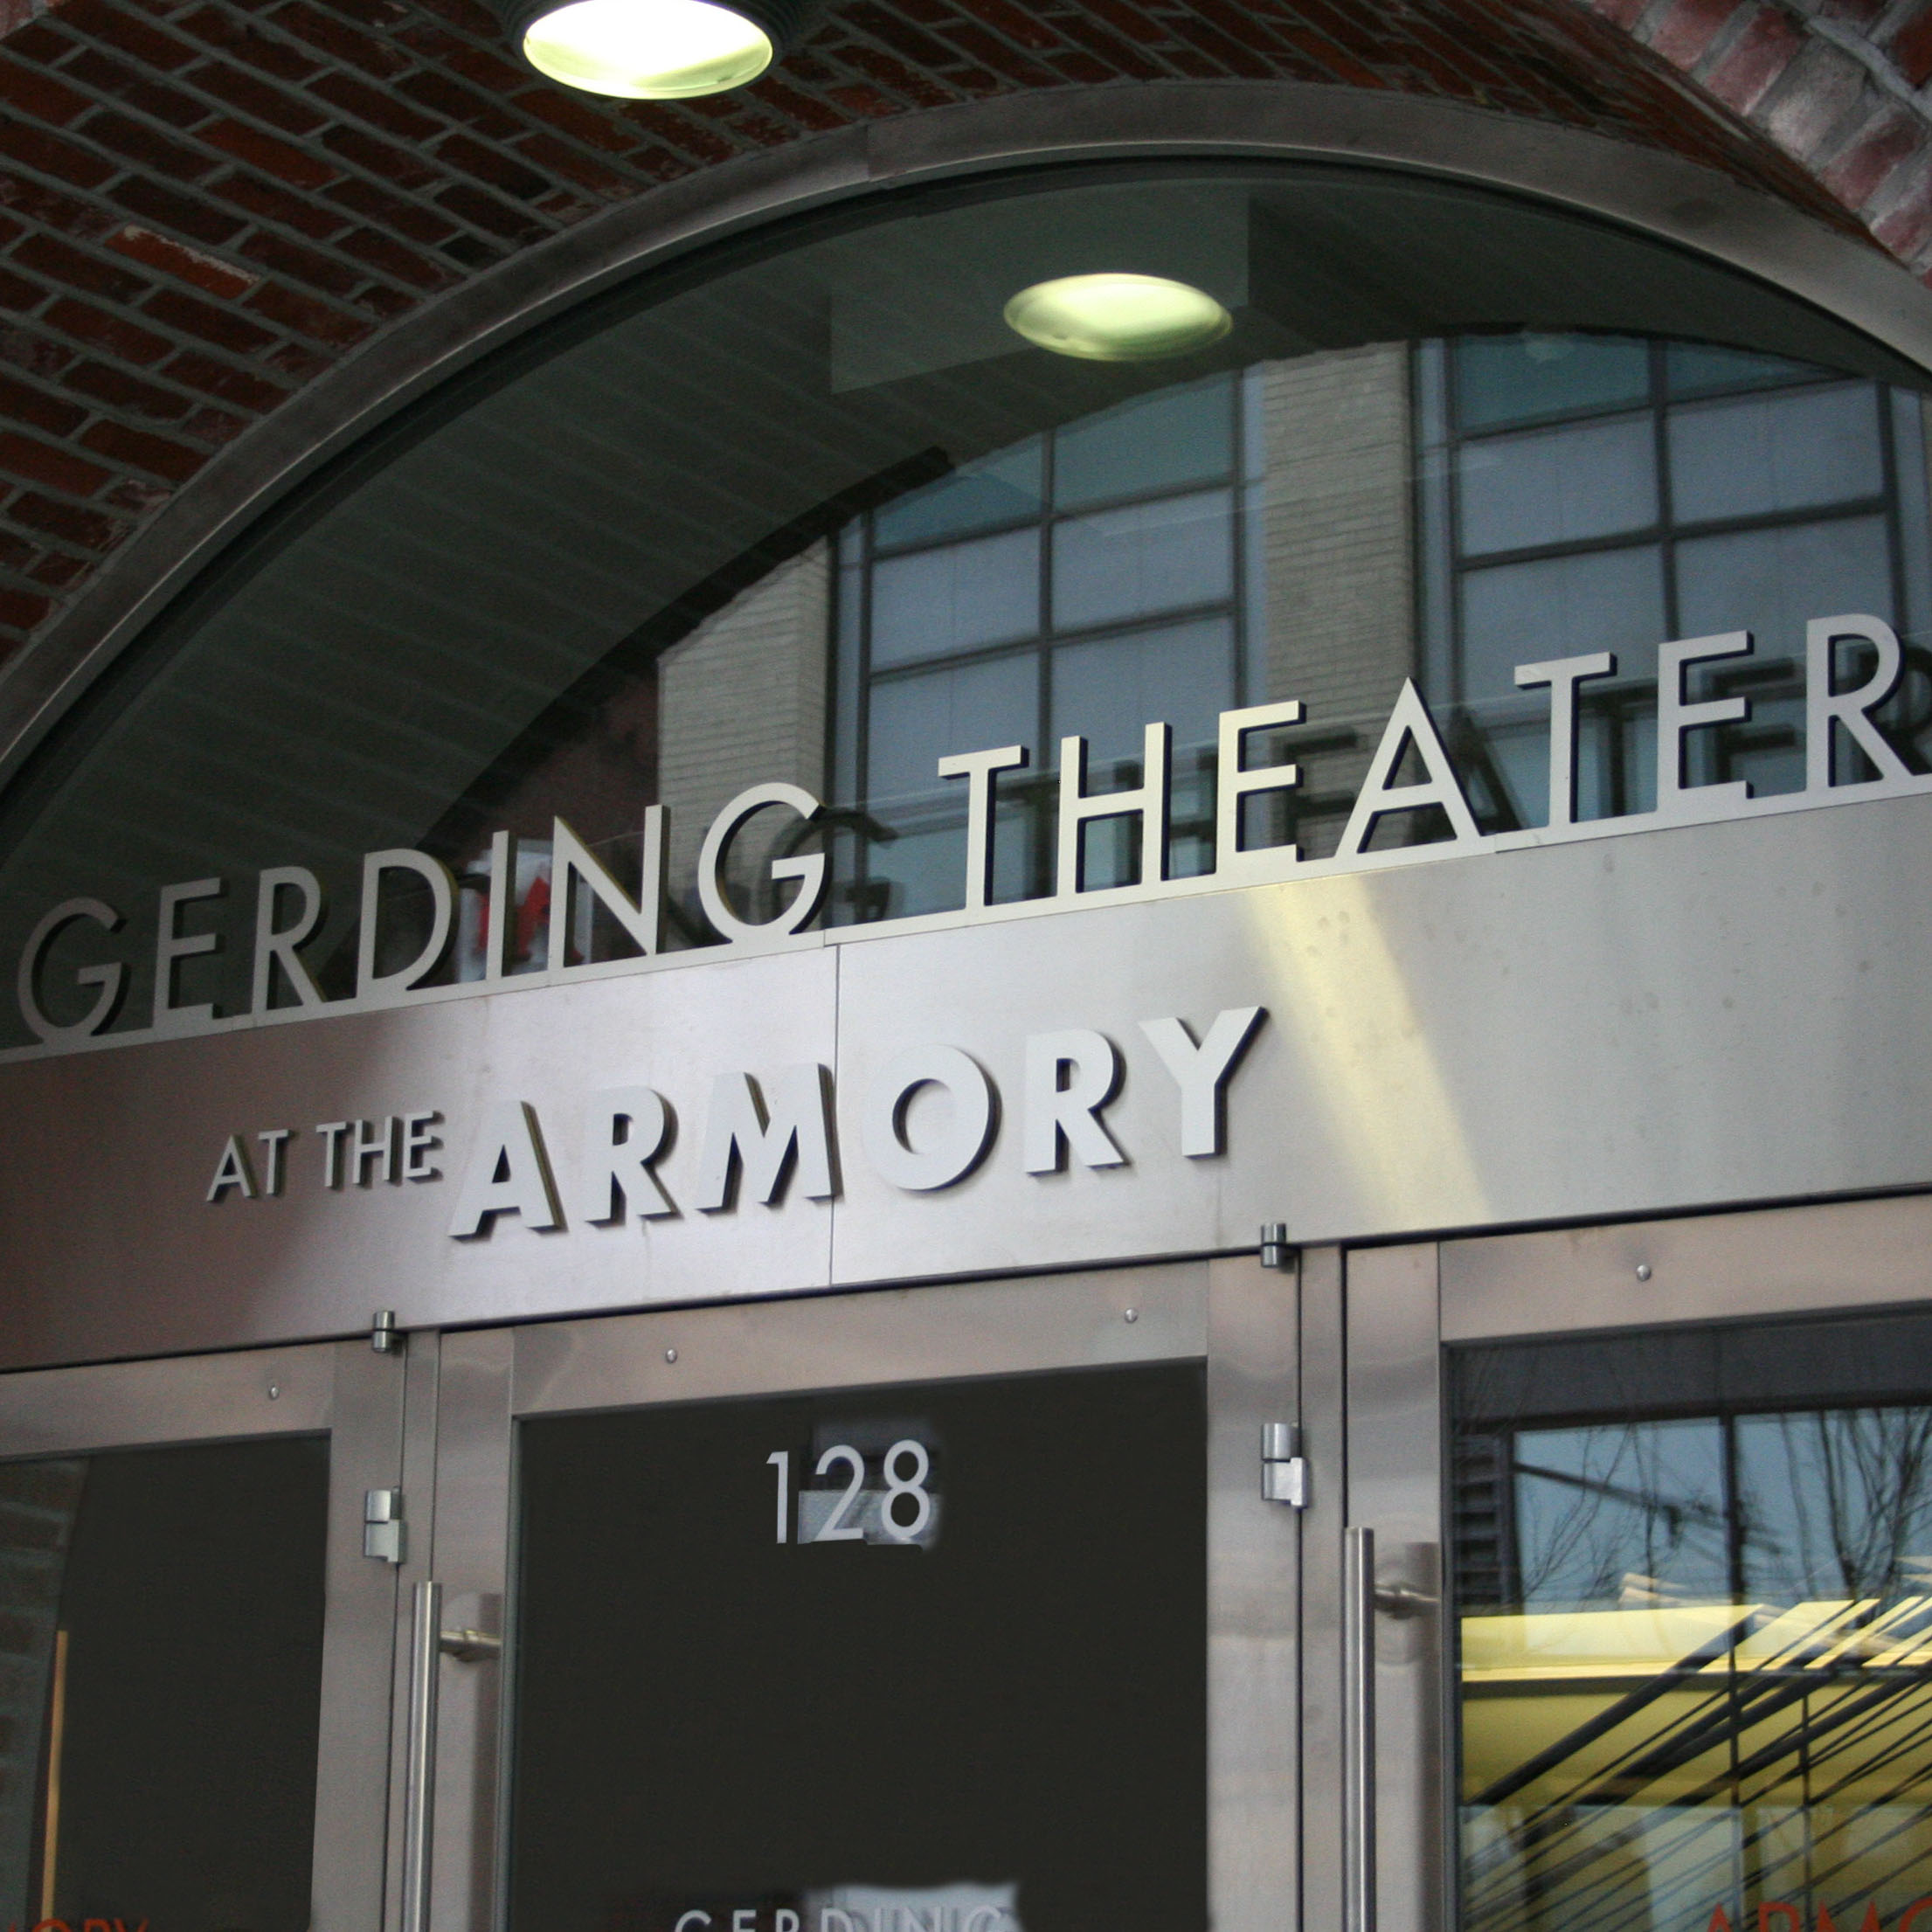 Gerding Theater at the Armory